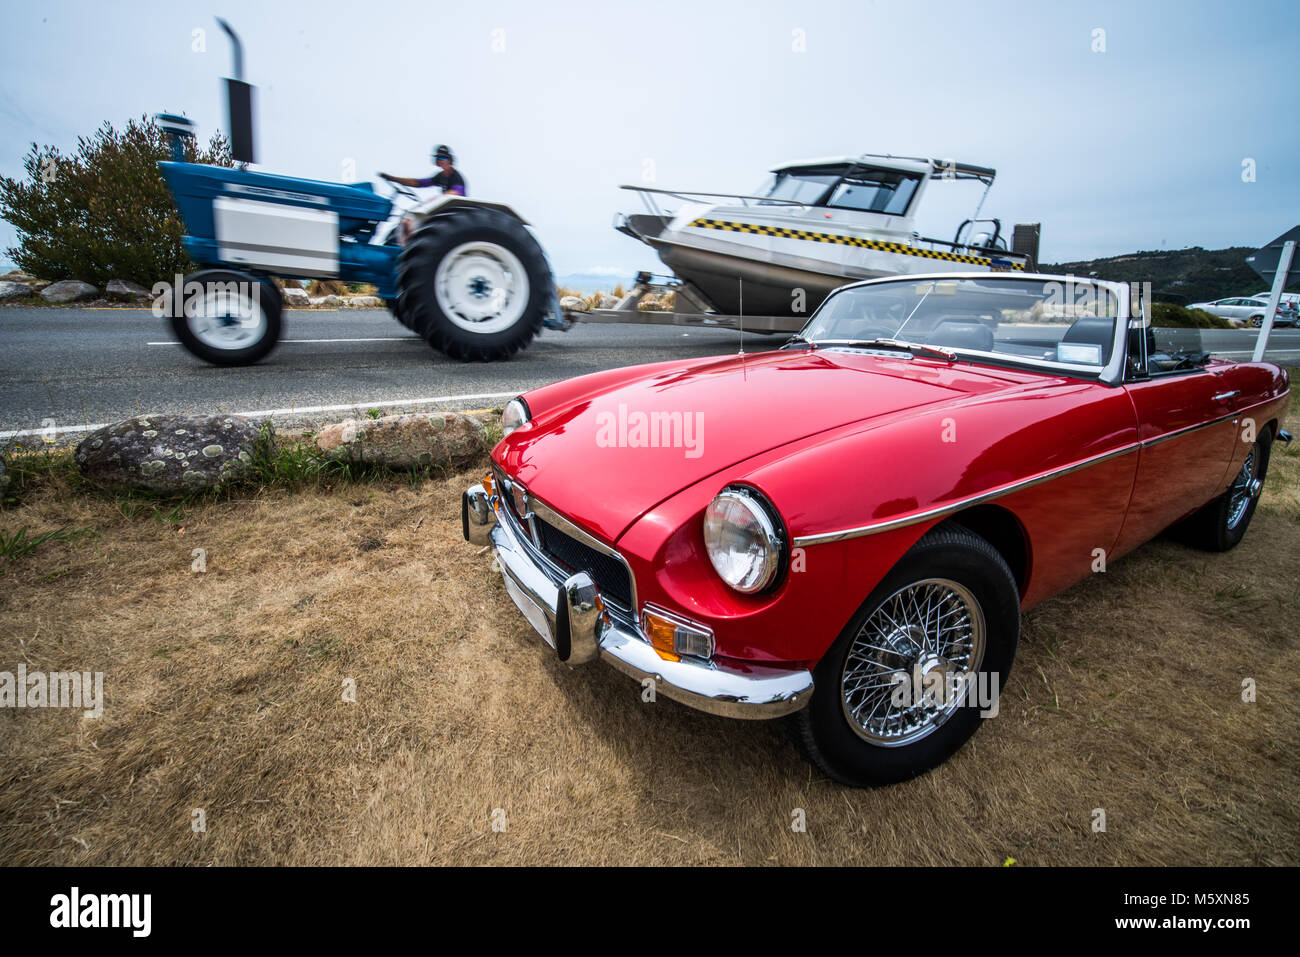 Exotic red Convertible car in front of tractor pulling boat - Stock Image